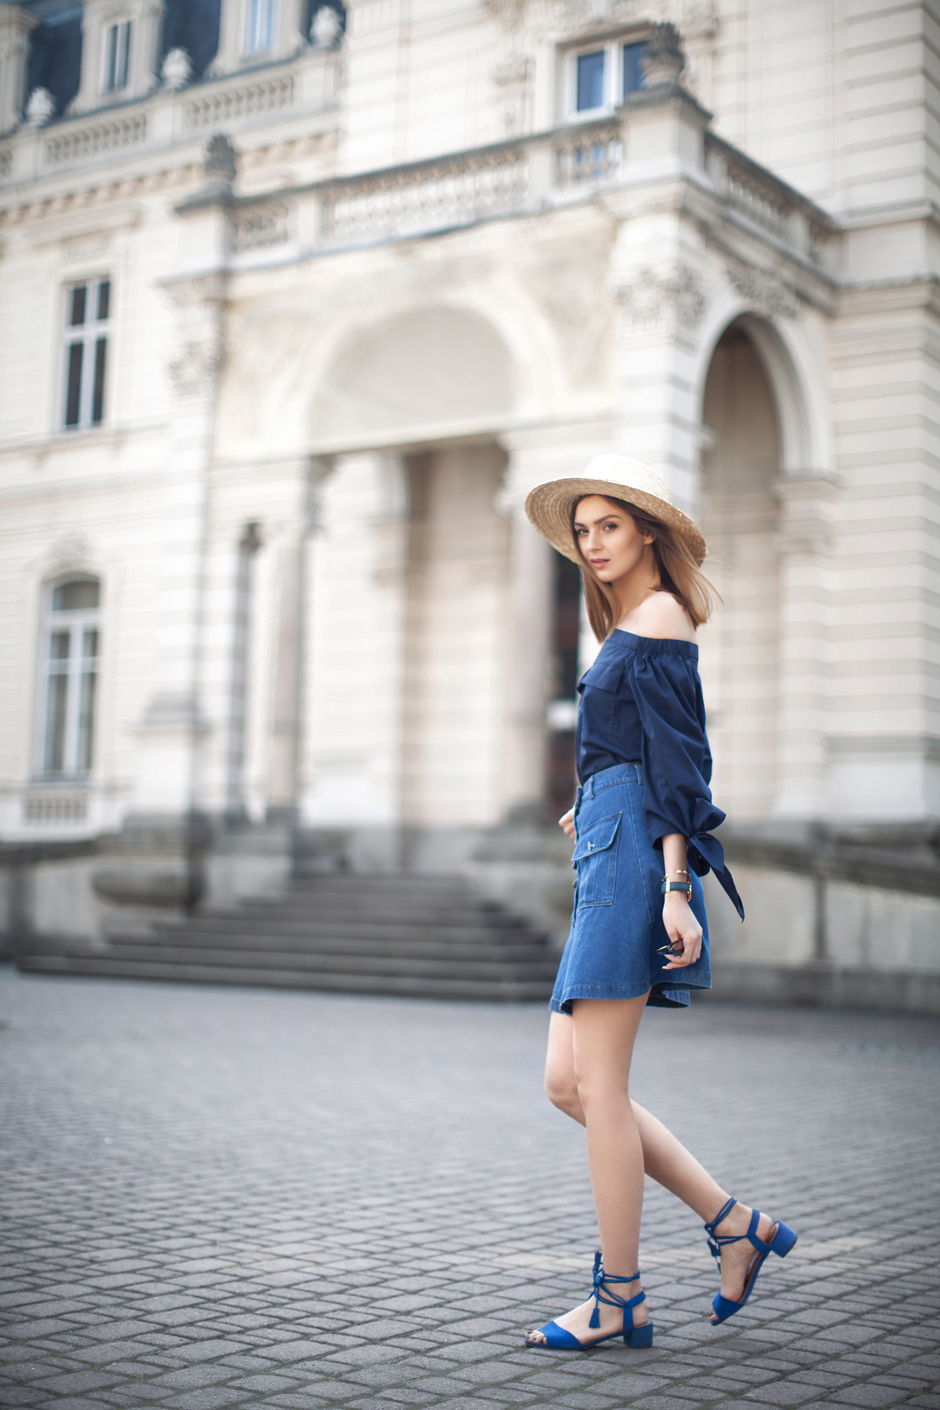 denim-skirt-outfit-off-shoulder-top-lace-up-sandals-street-style